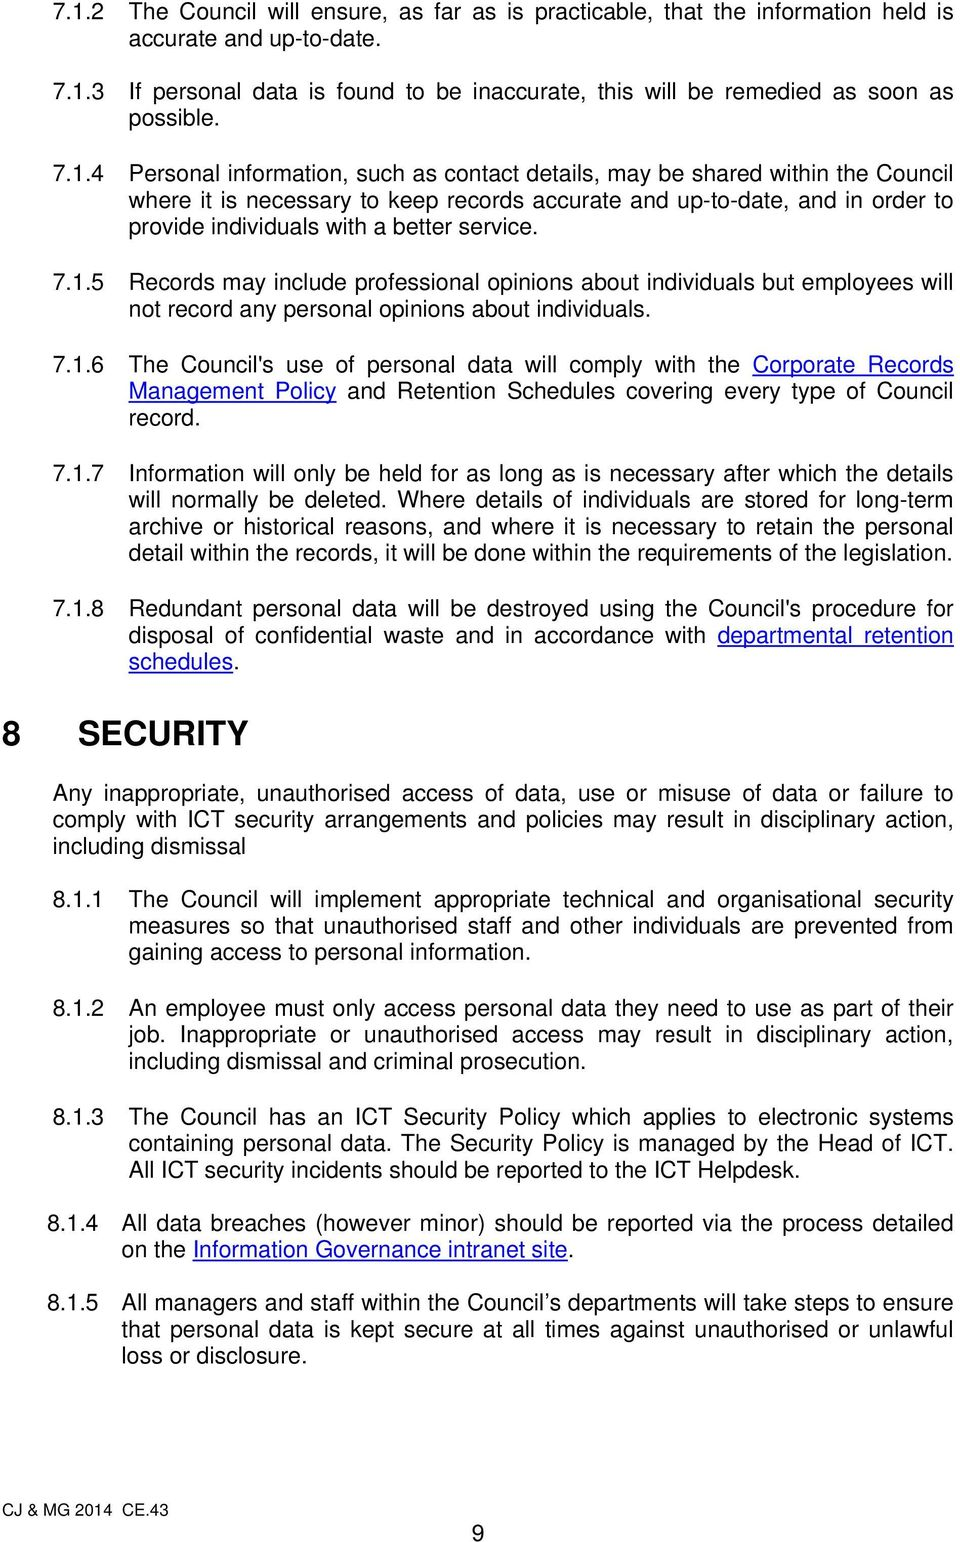 service. 7.1.5 Records may include professional opinions about individuals but employees will not record any personal opinions about individuals. 7.1.6 The Council's use of personal data will comply with the Corporate Records Management Policy and Retention Schedules covering every type of Council record.